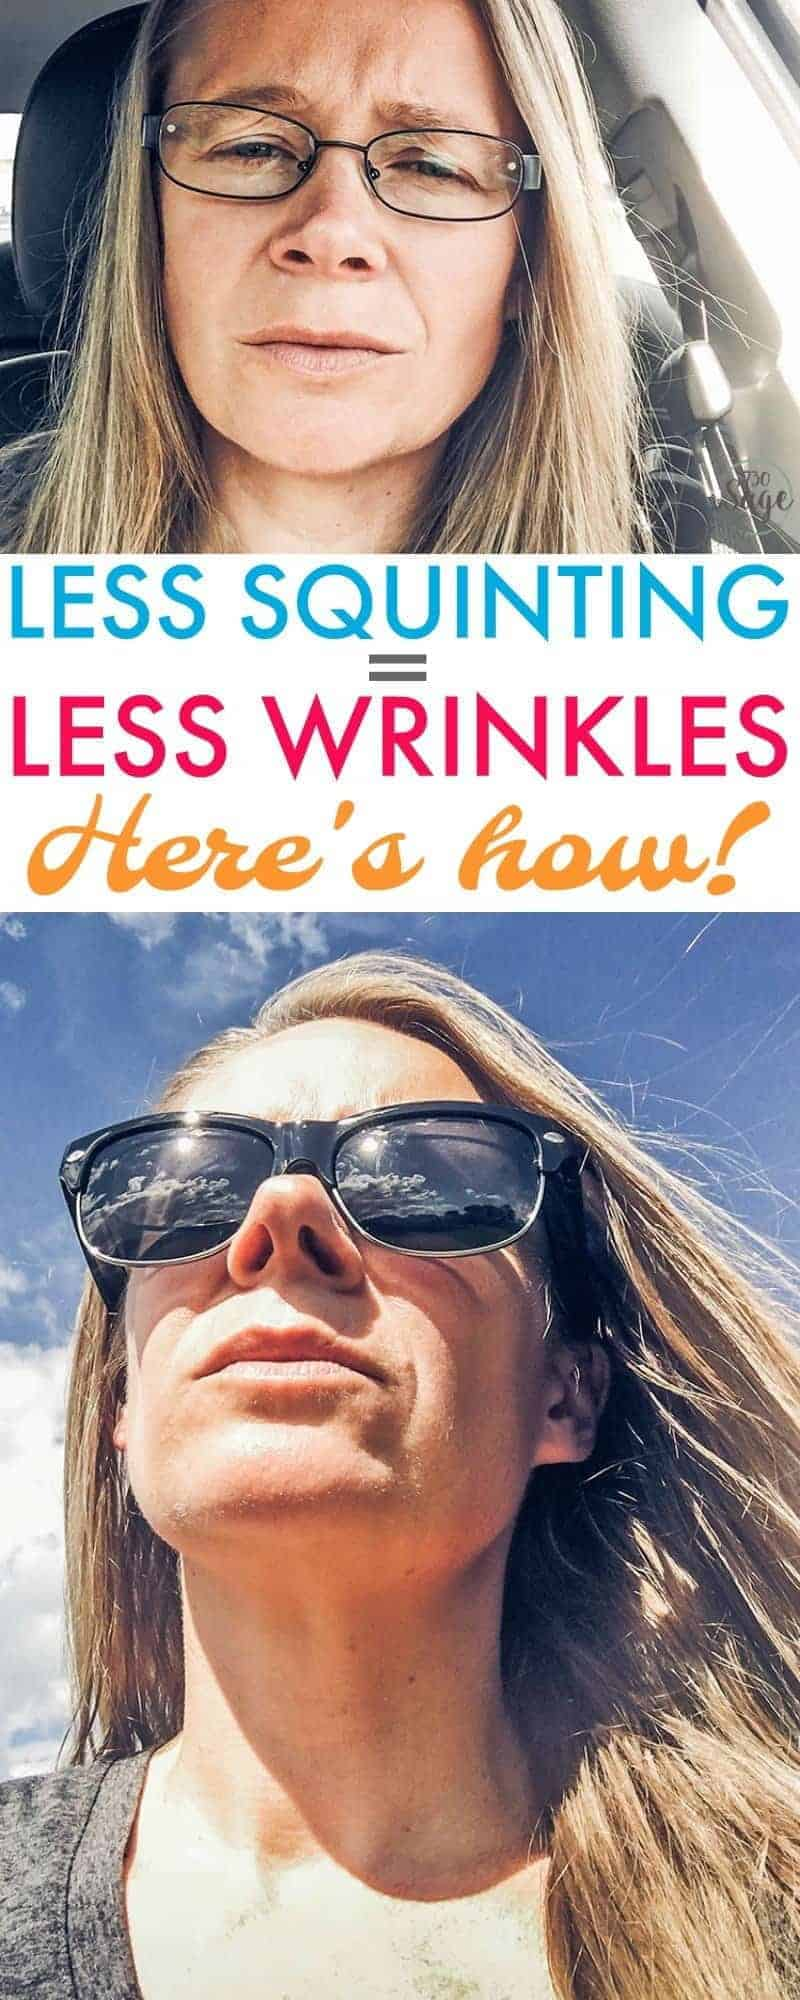 Squint much? Have you seen what squinting can do around your eyes? Wrinkles galore! Well you don't have to squint anymore, even if you wear glasses. Learn how to avoid squinting for less wrinkles. It's easy!